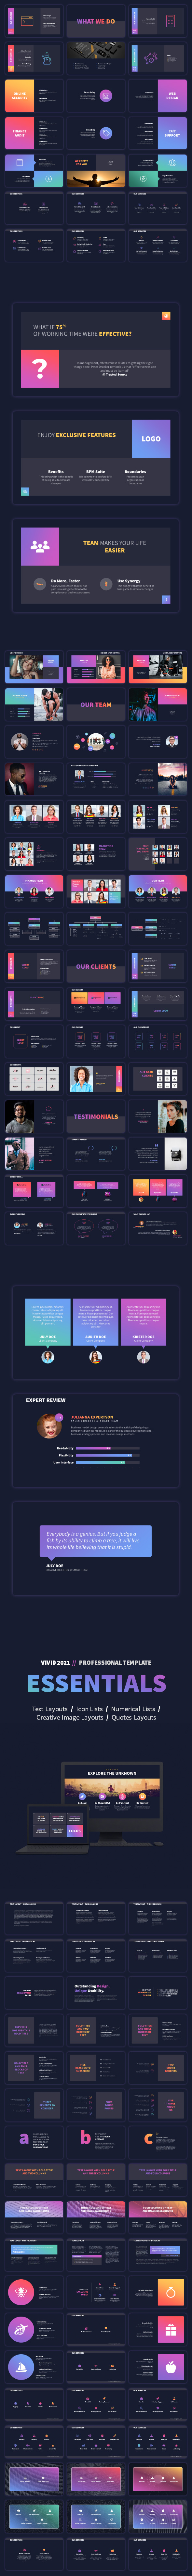 VIVID 2021 - Professional PowerPoint Presentation Template - 14